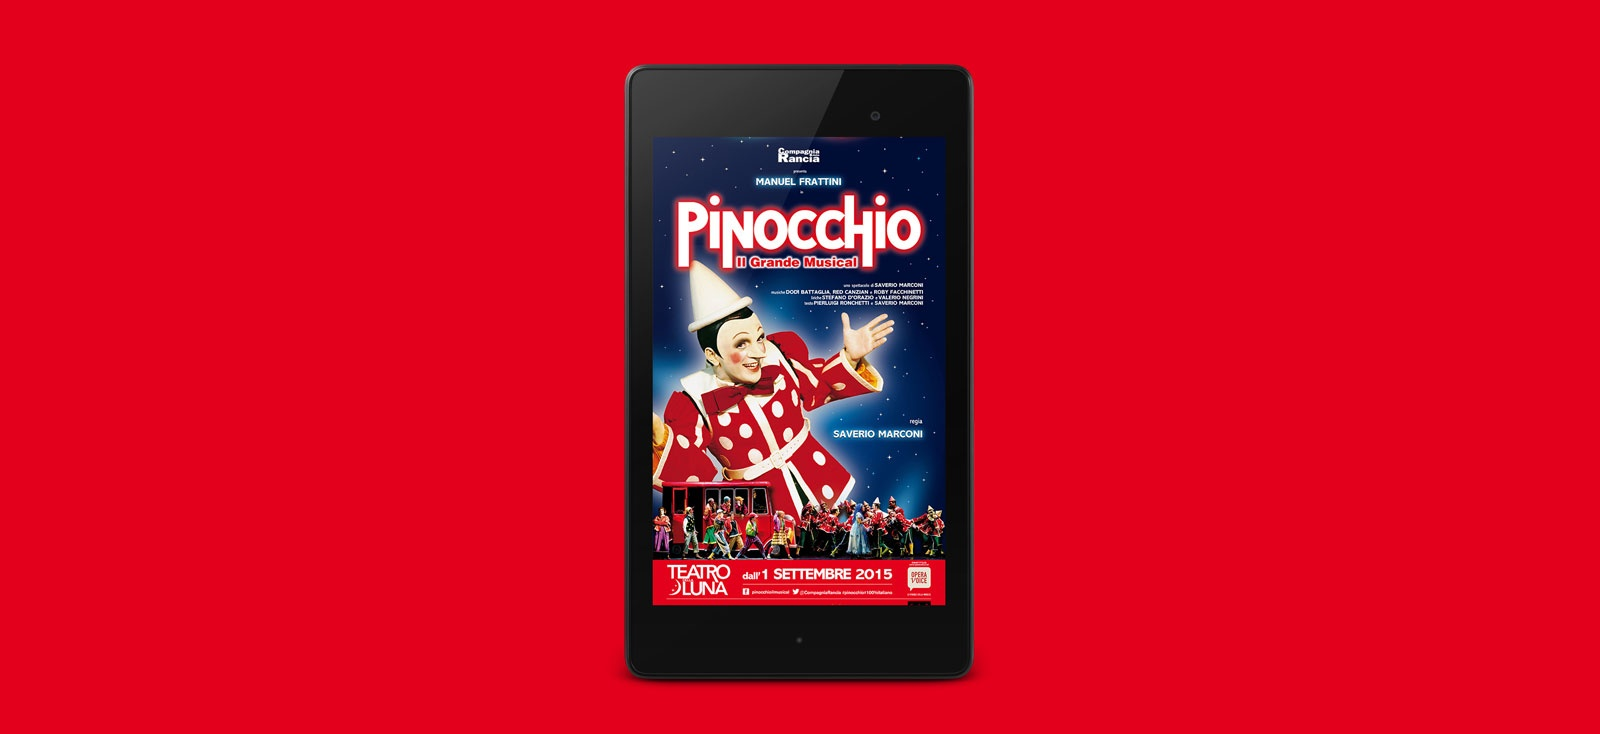 Opera Voice for Pinocchio musical